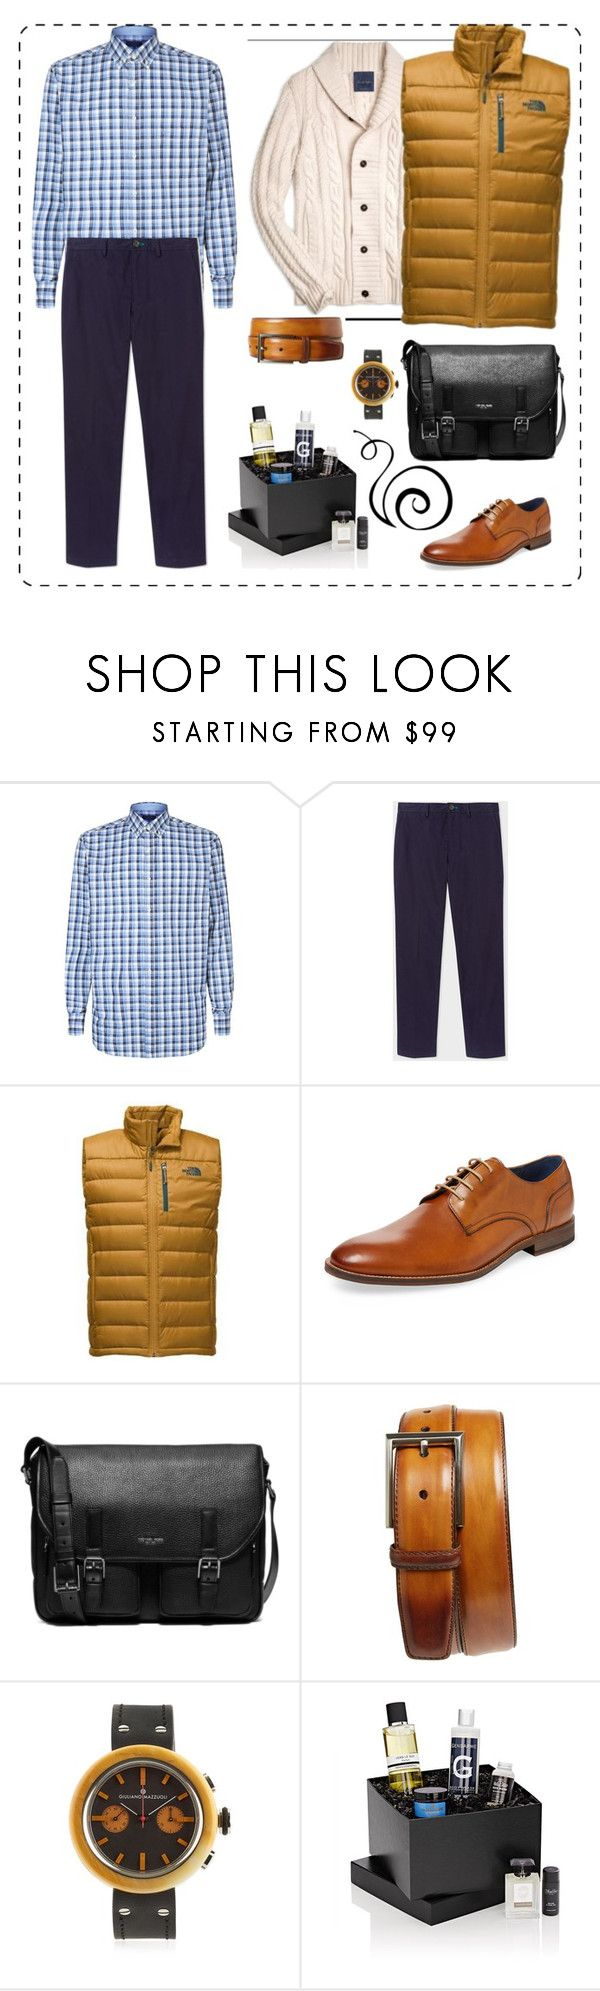 """Без названия #152"" by uleetka ❤ liked on Polyvore featuring Paul & Shark, The North Face, Gordon Rush, Michael Kors, Magnanni, Giuliano Mazzuoli, Beauty Box, men's fashion and menswear"